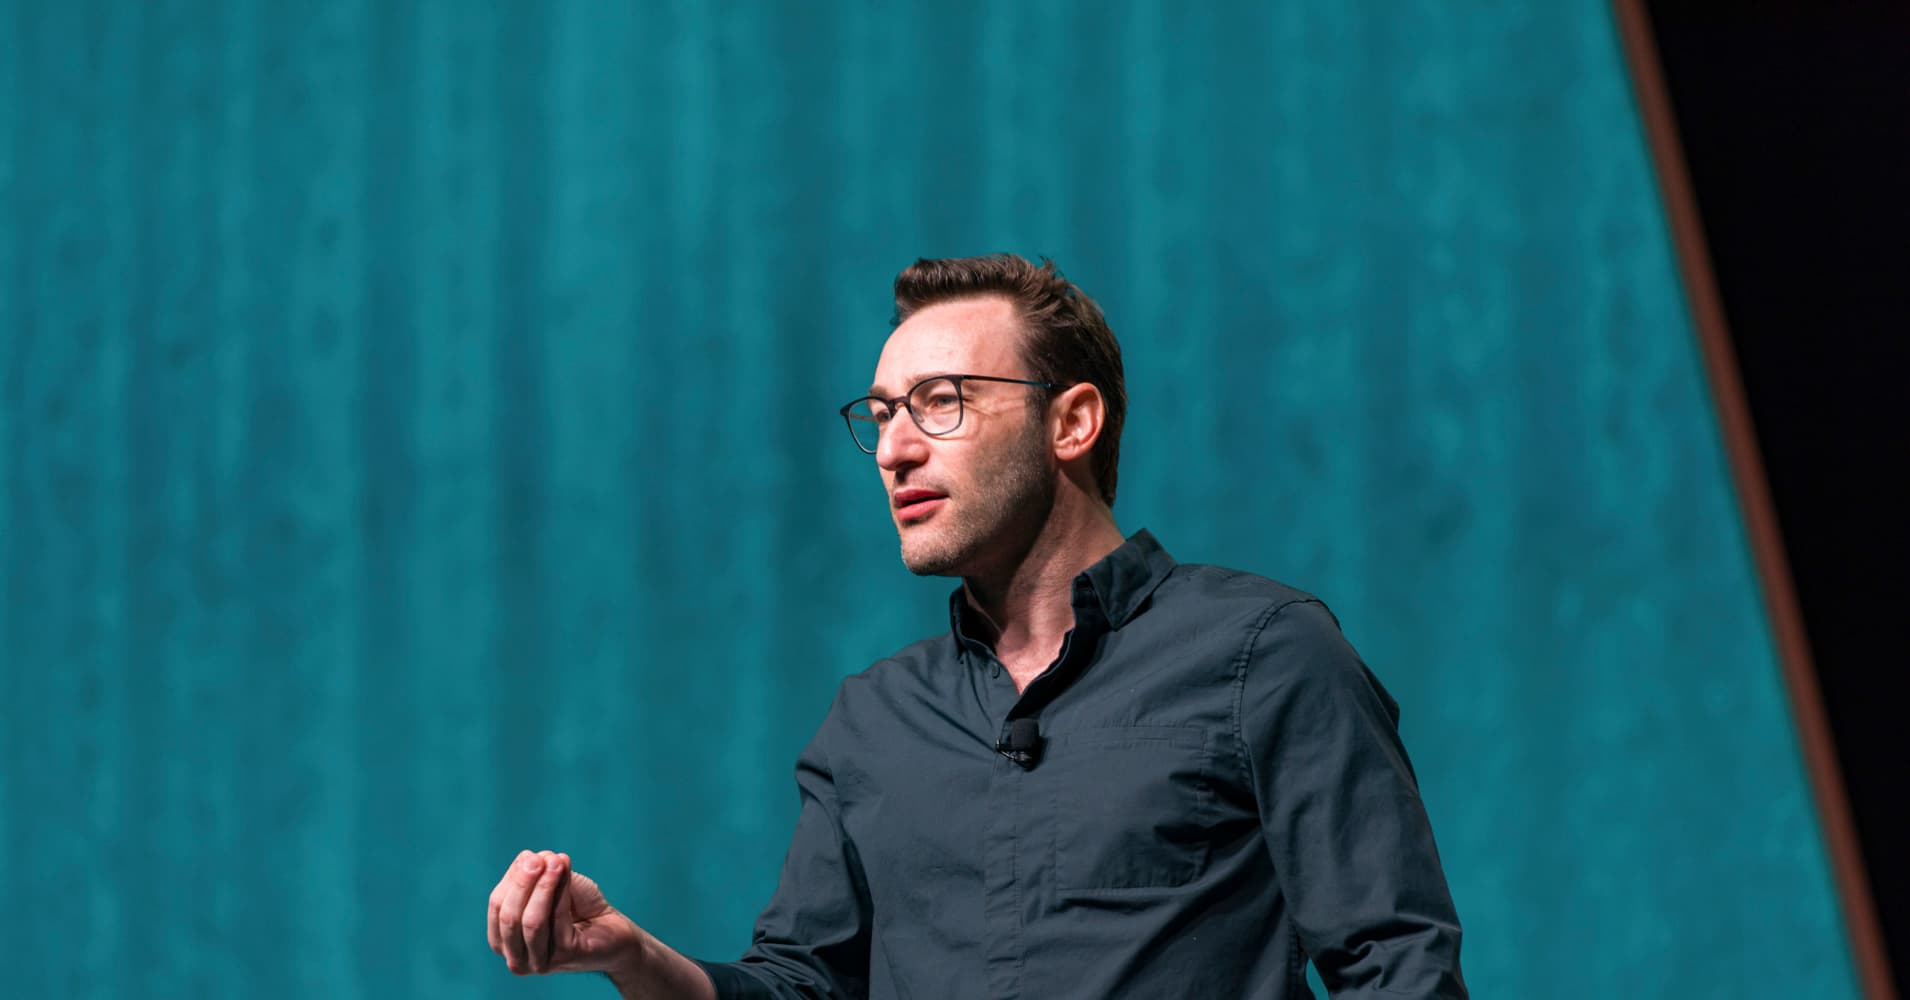 Simon Sinek: These 2 life-changing books will train your brain for success